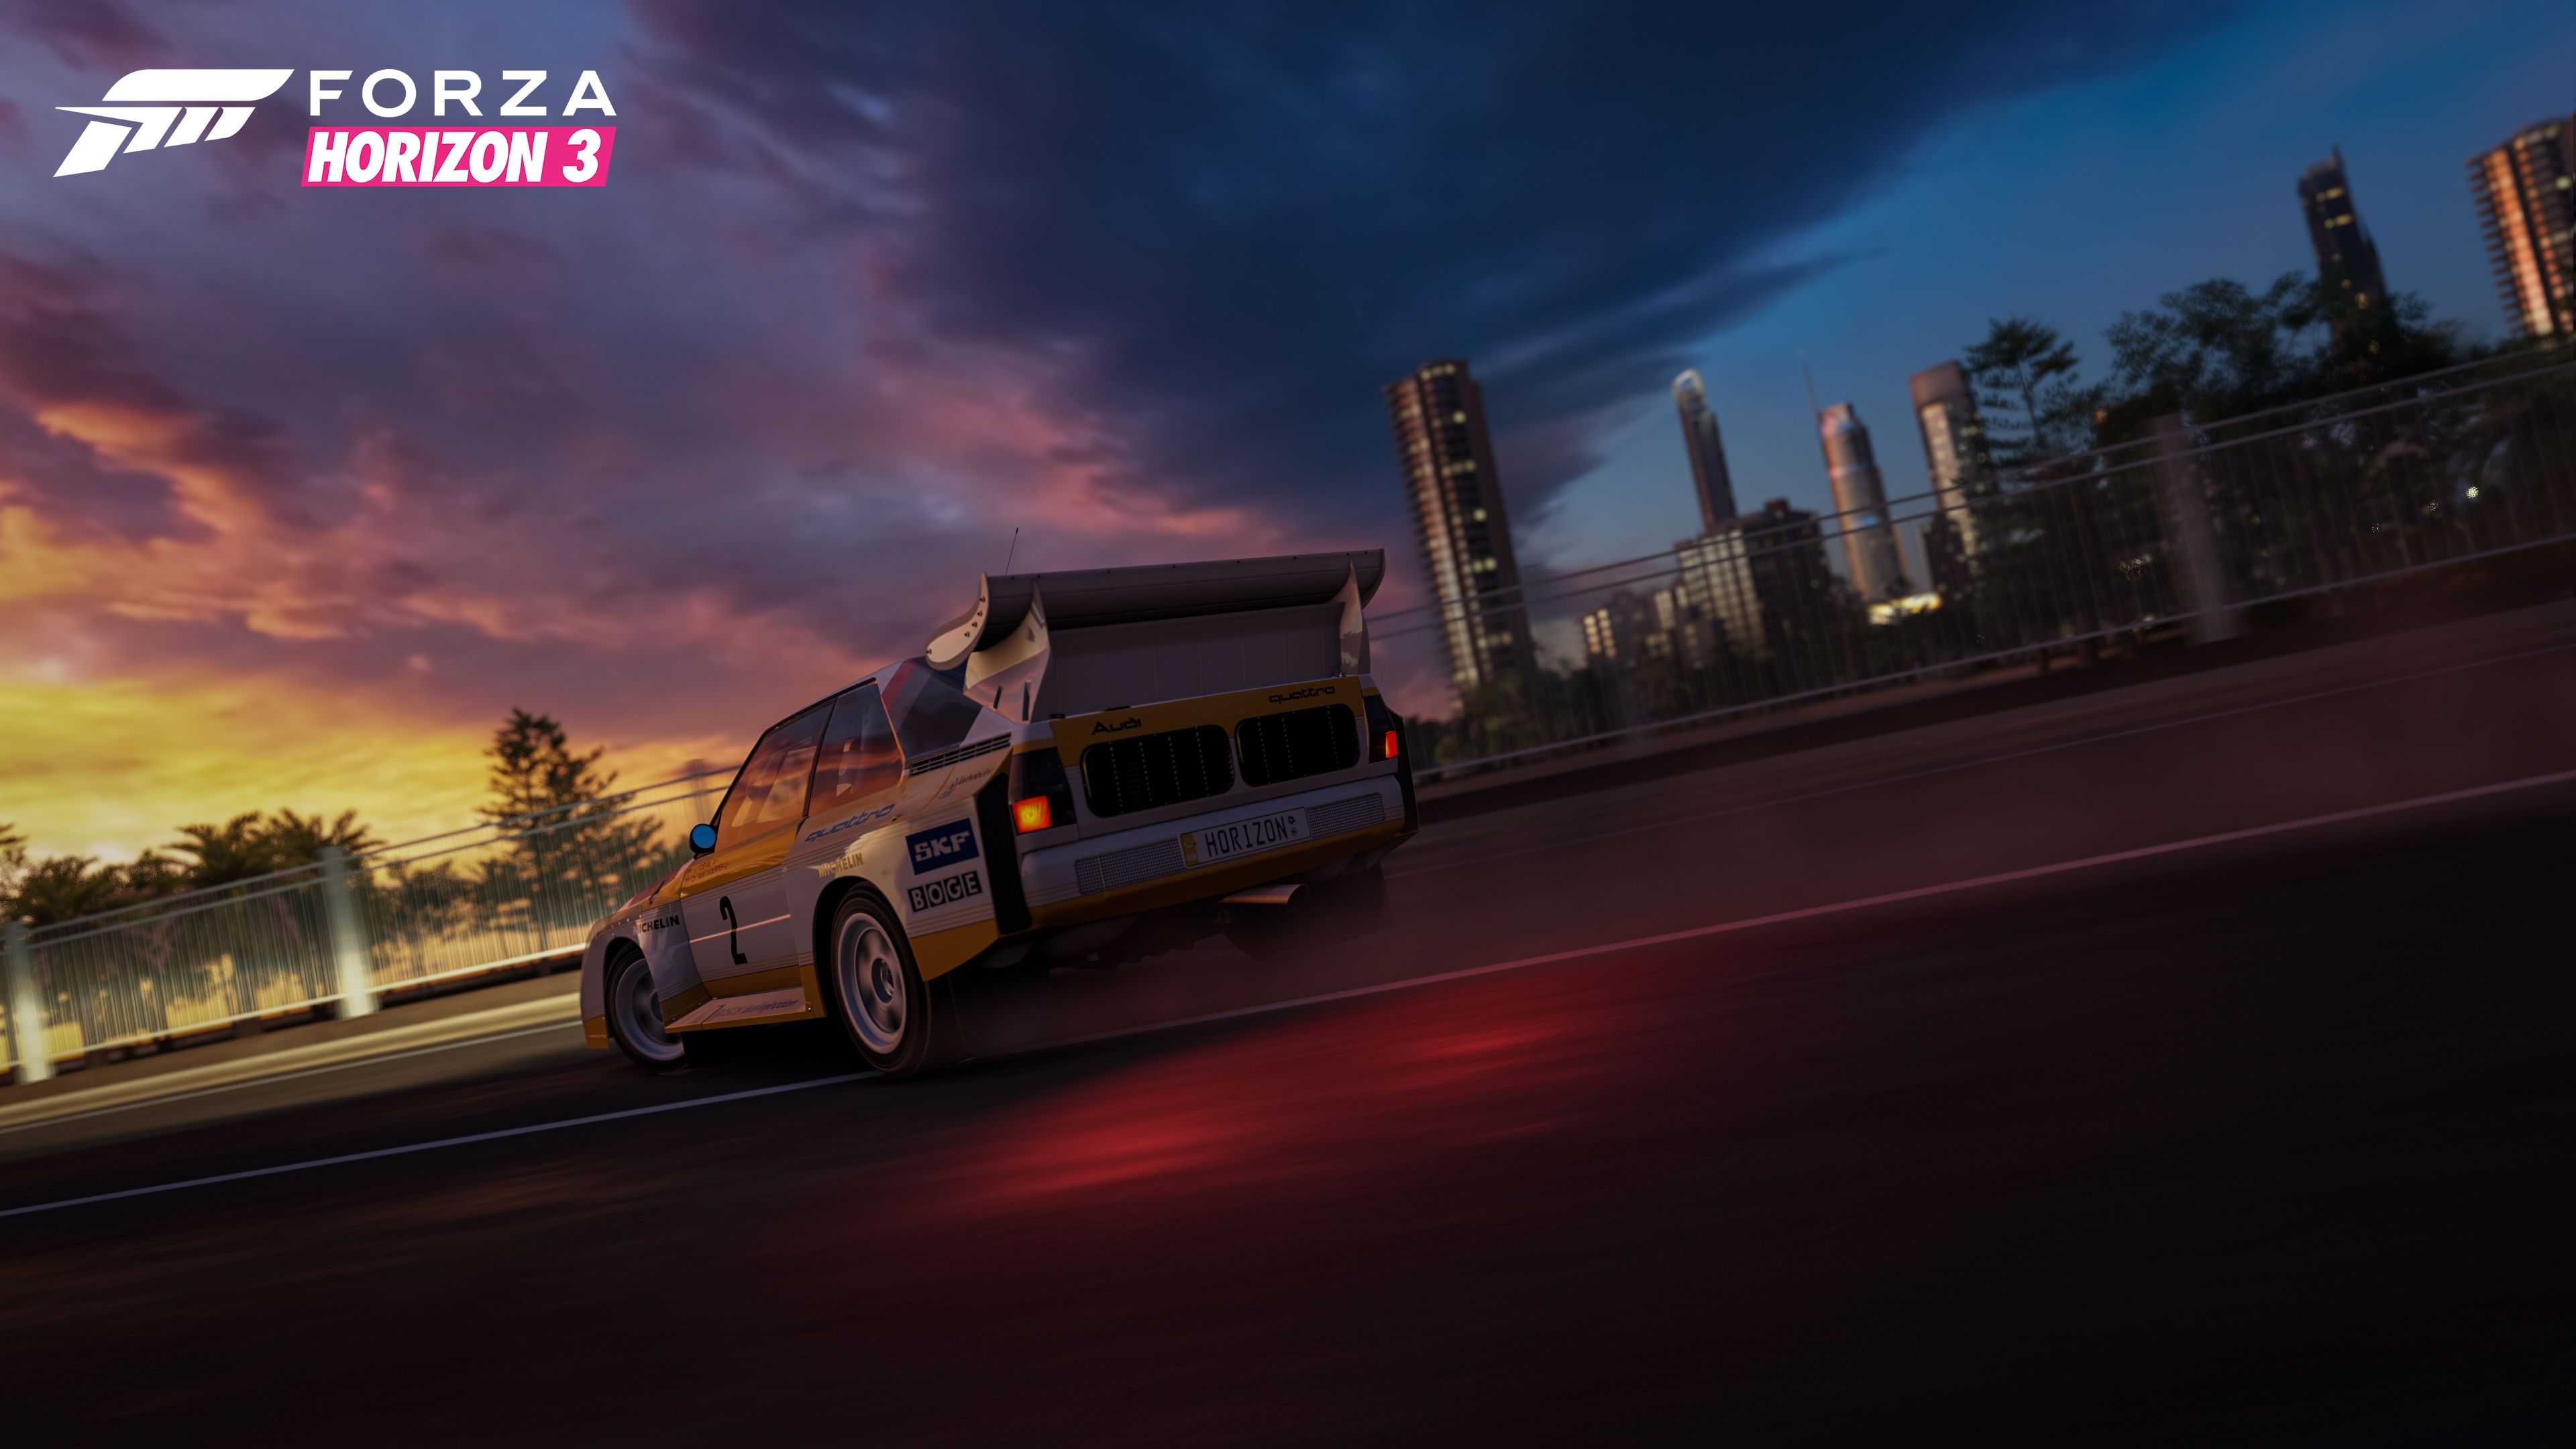 Forza Horizon 3 Sunset Skyline